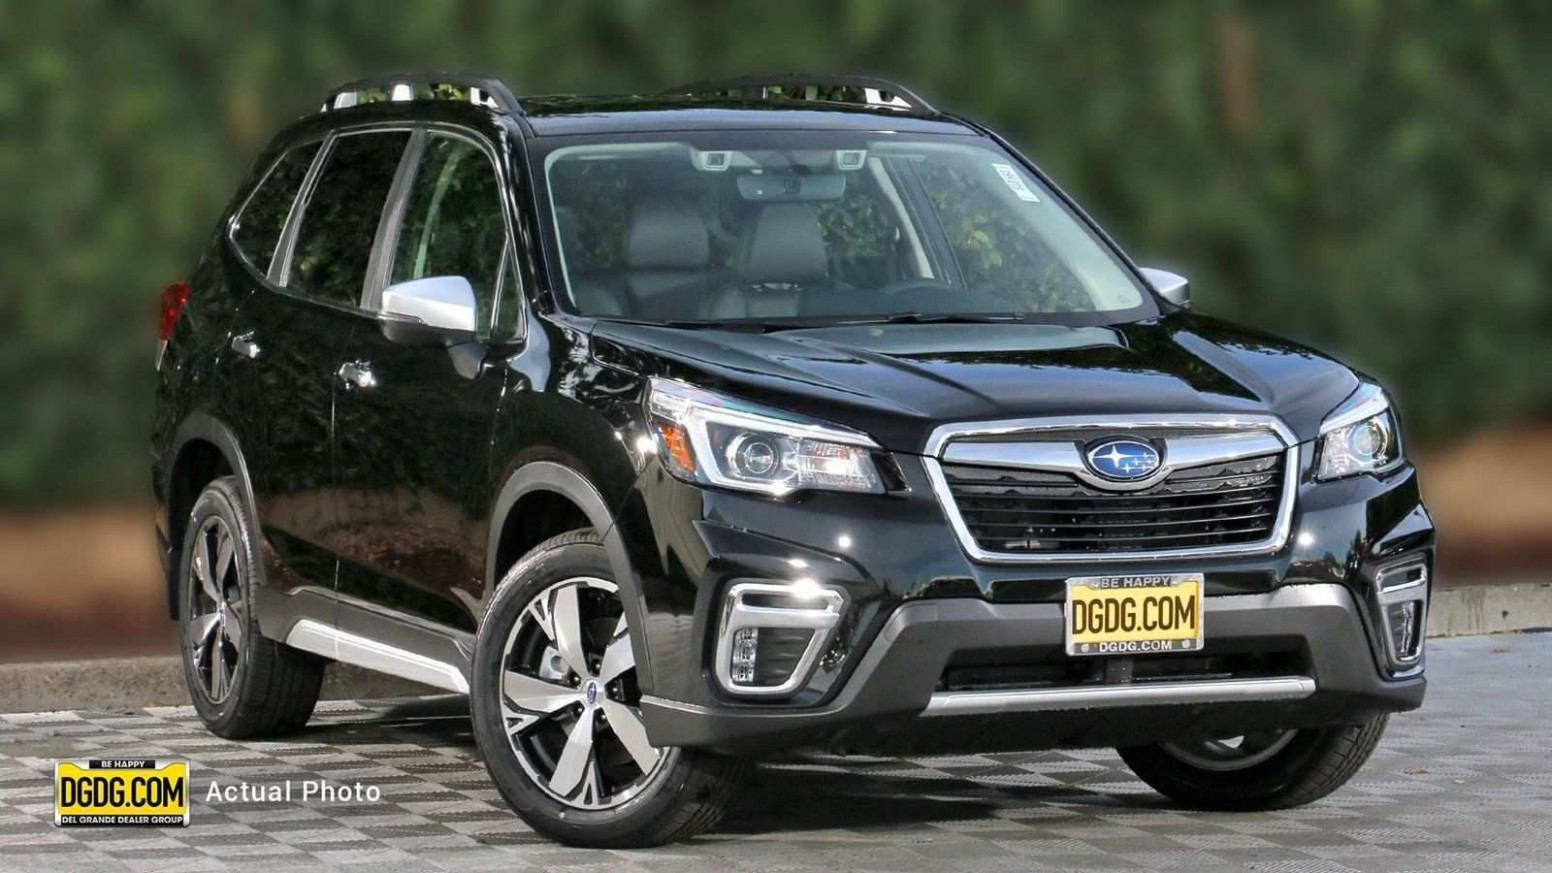 6 subaru forester kbb Overview and Price 6*6 - 6 subaru ...